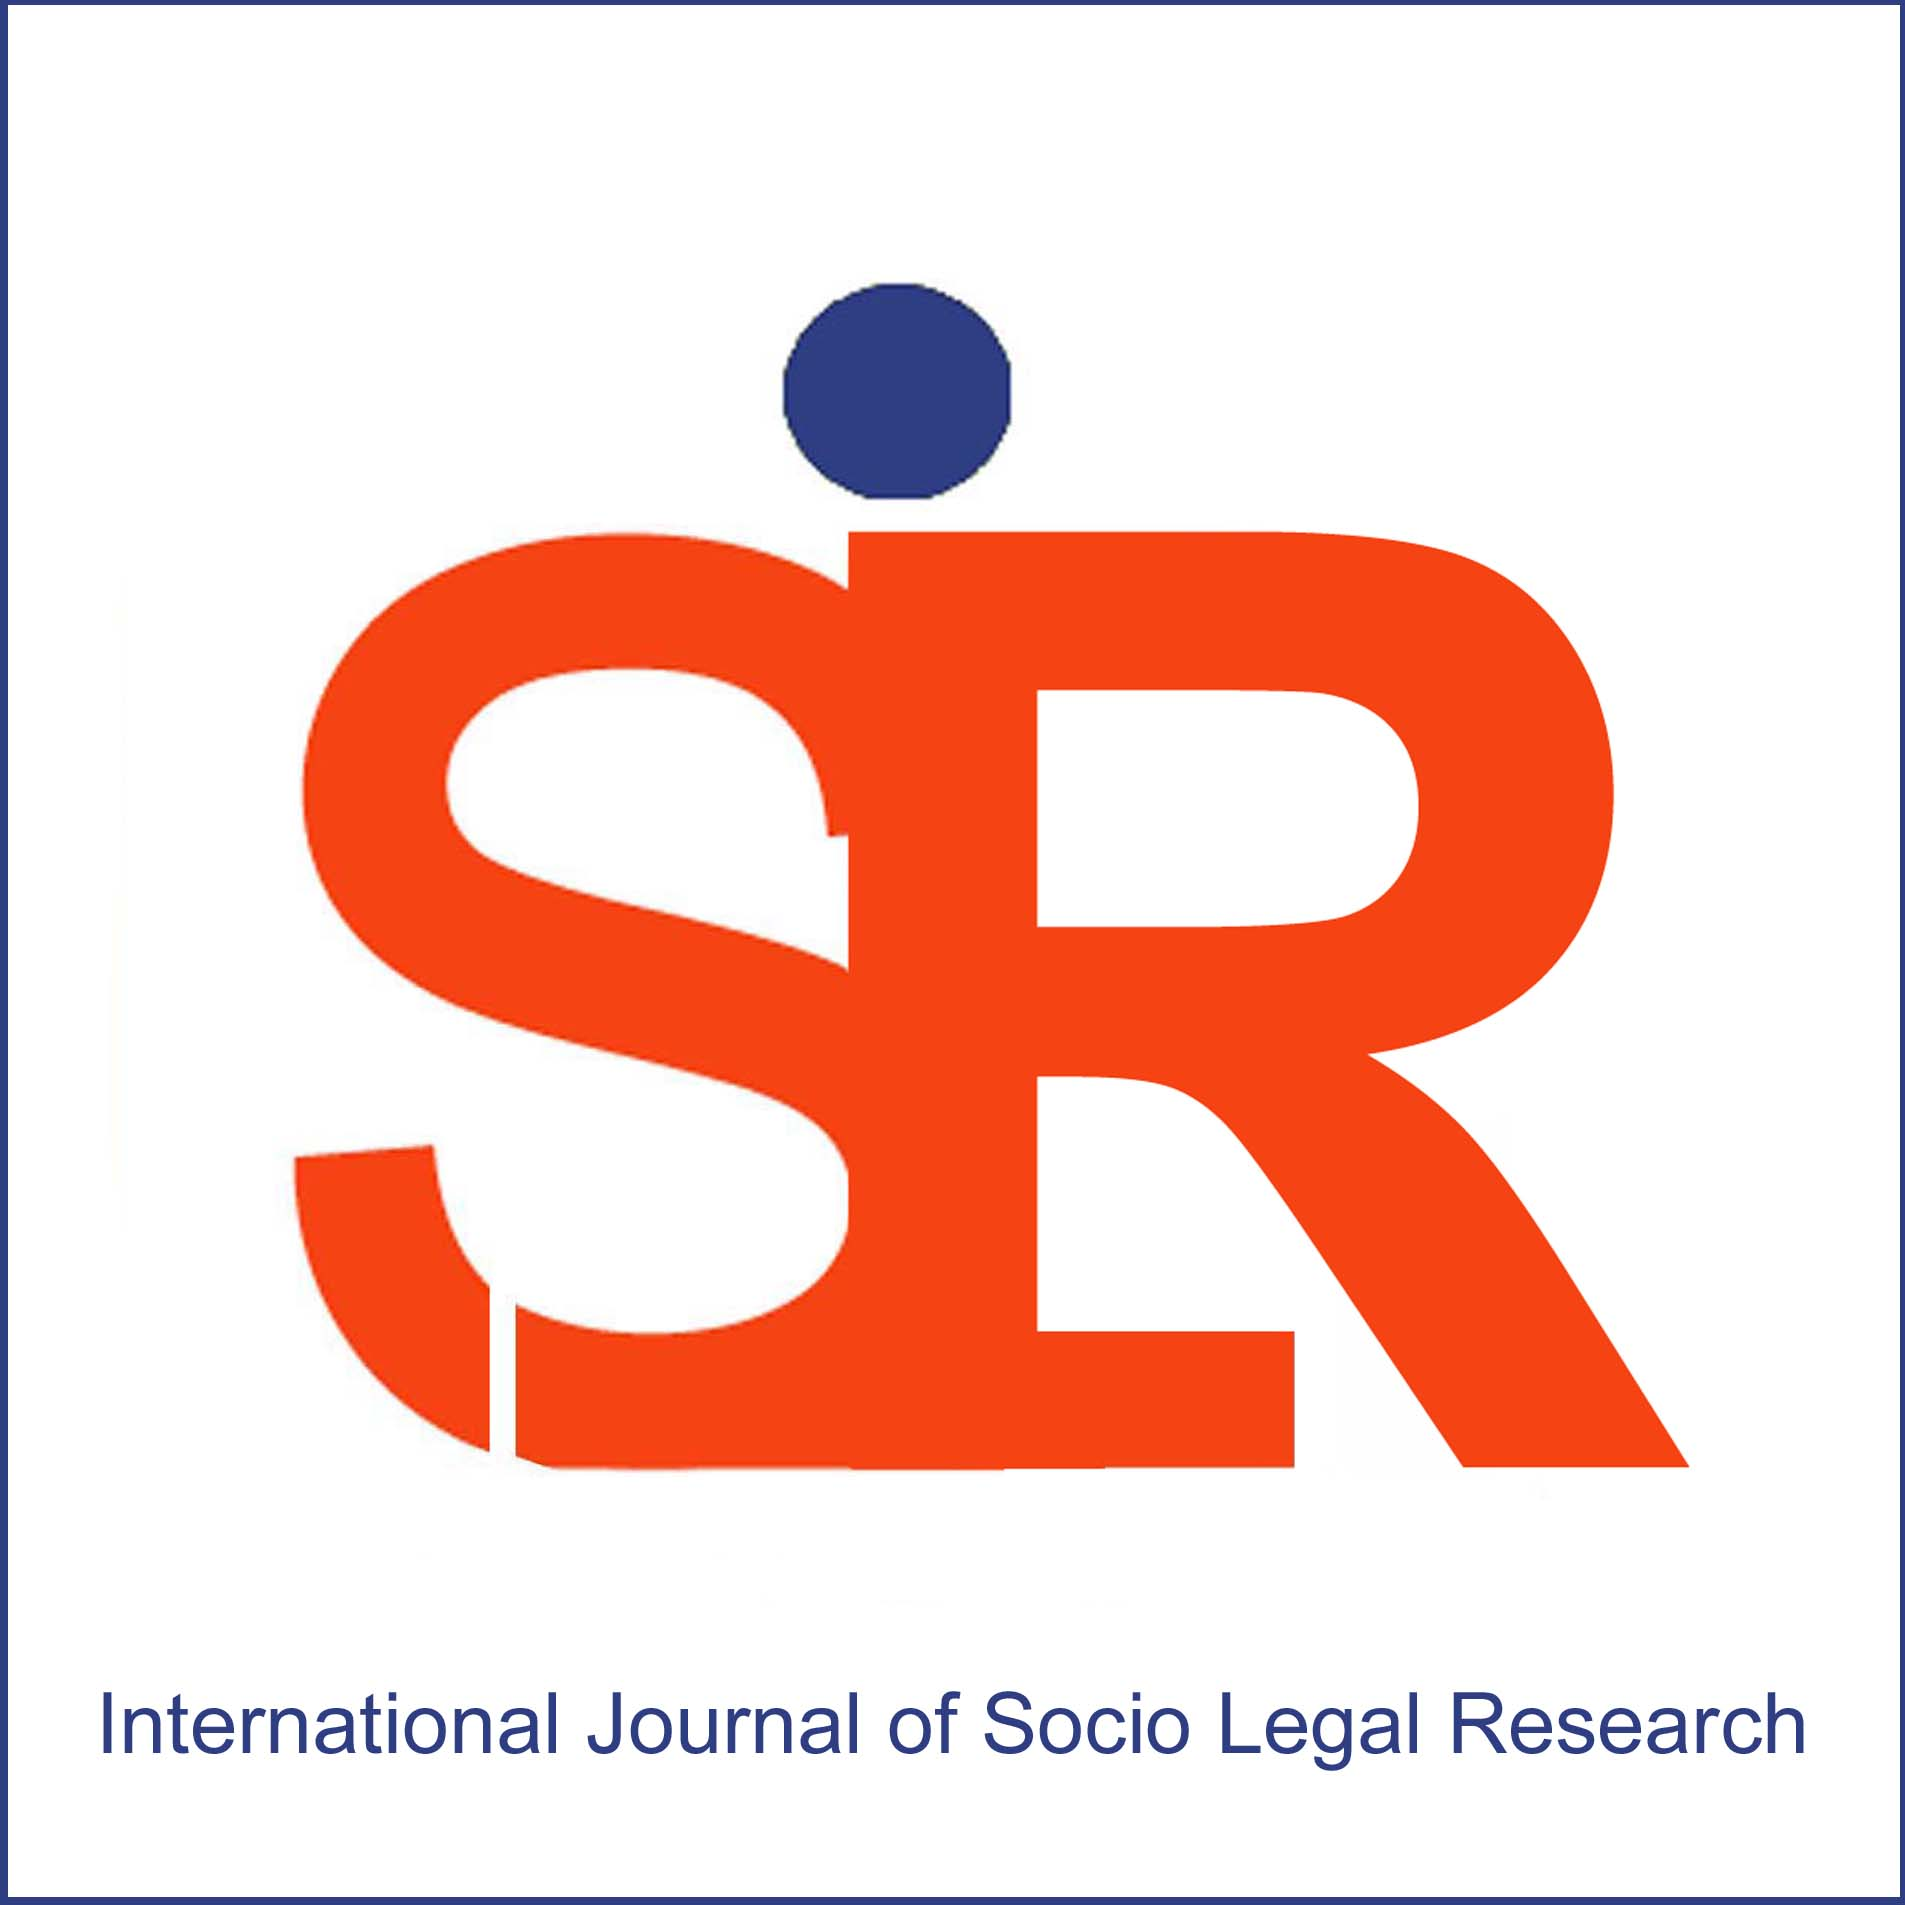 Call for Papers: International Journal of Socio-Legal Research [IJSLR]